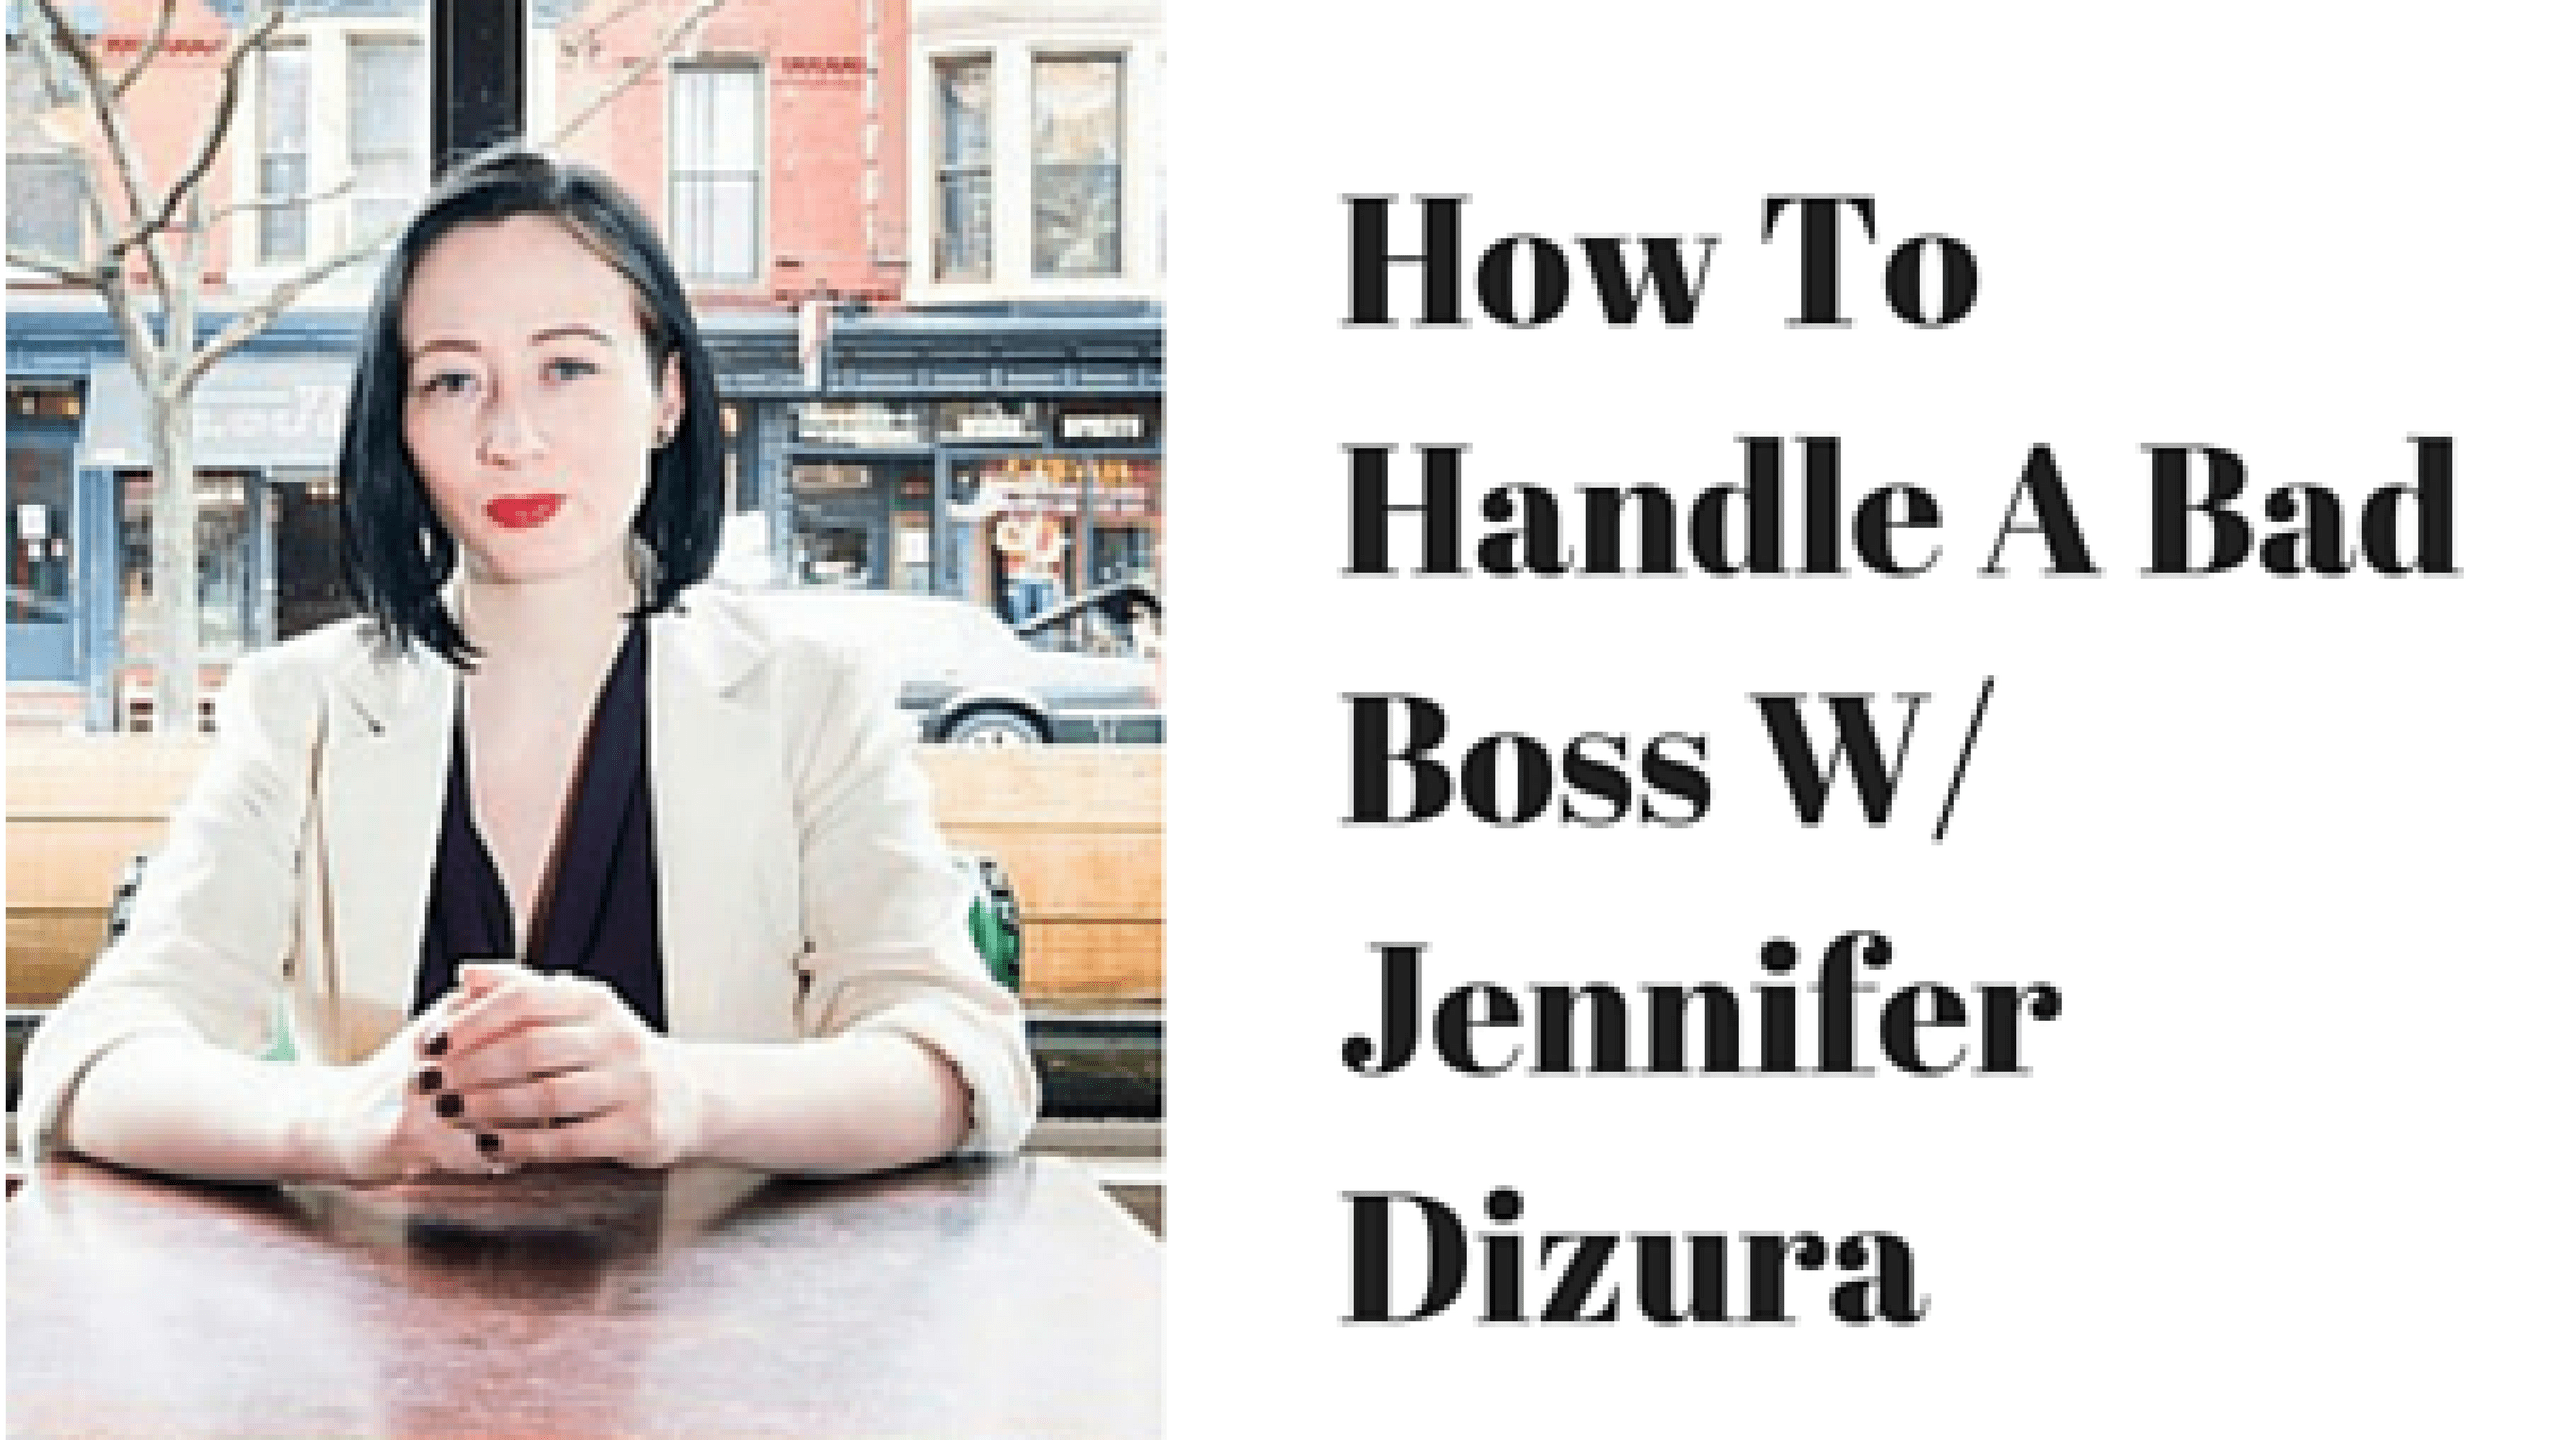 13-deal-horrible-boss-jennifer-dziura